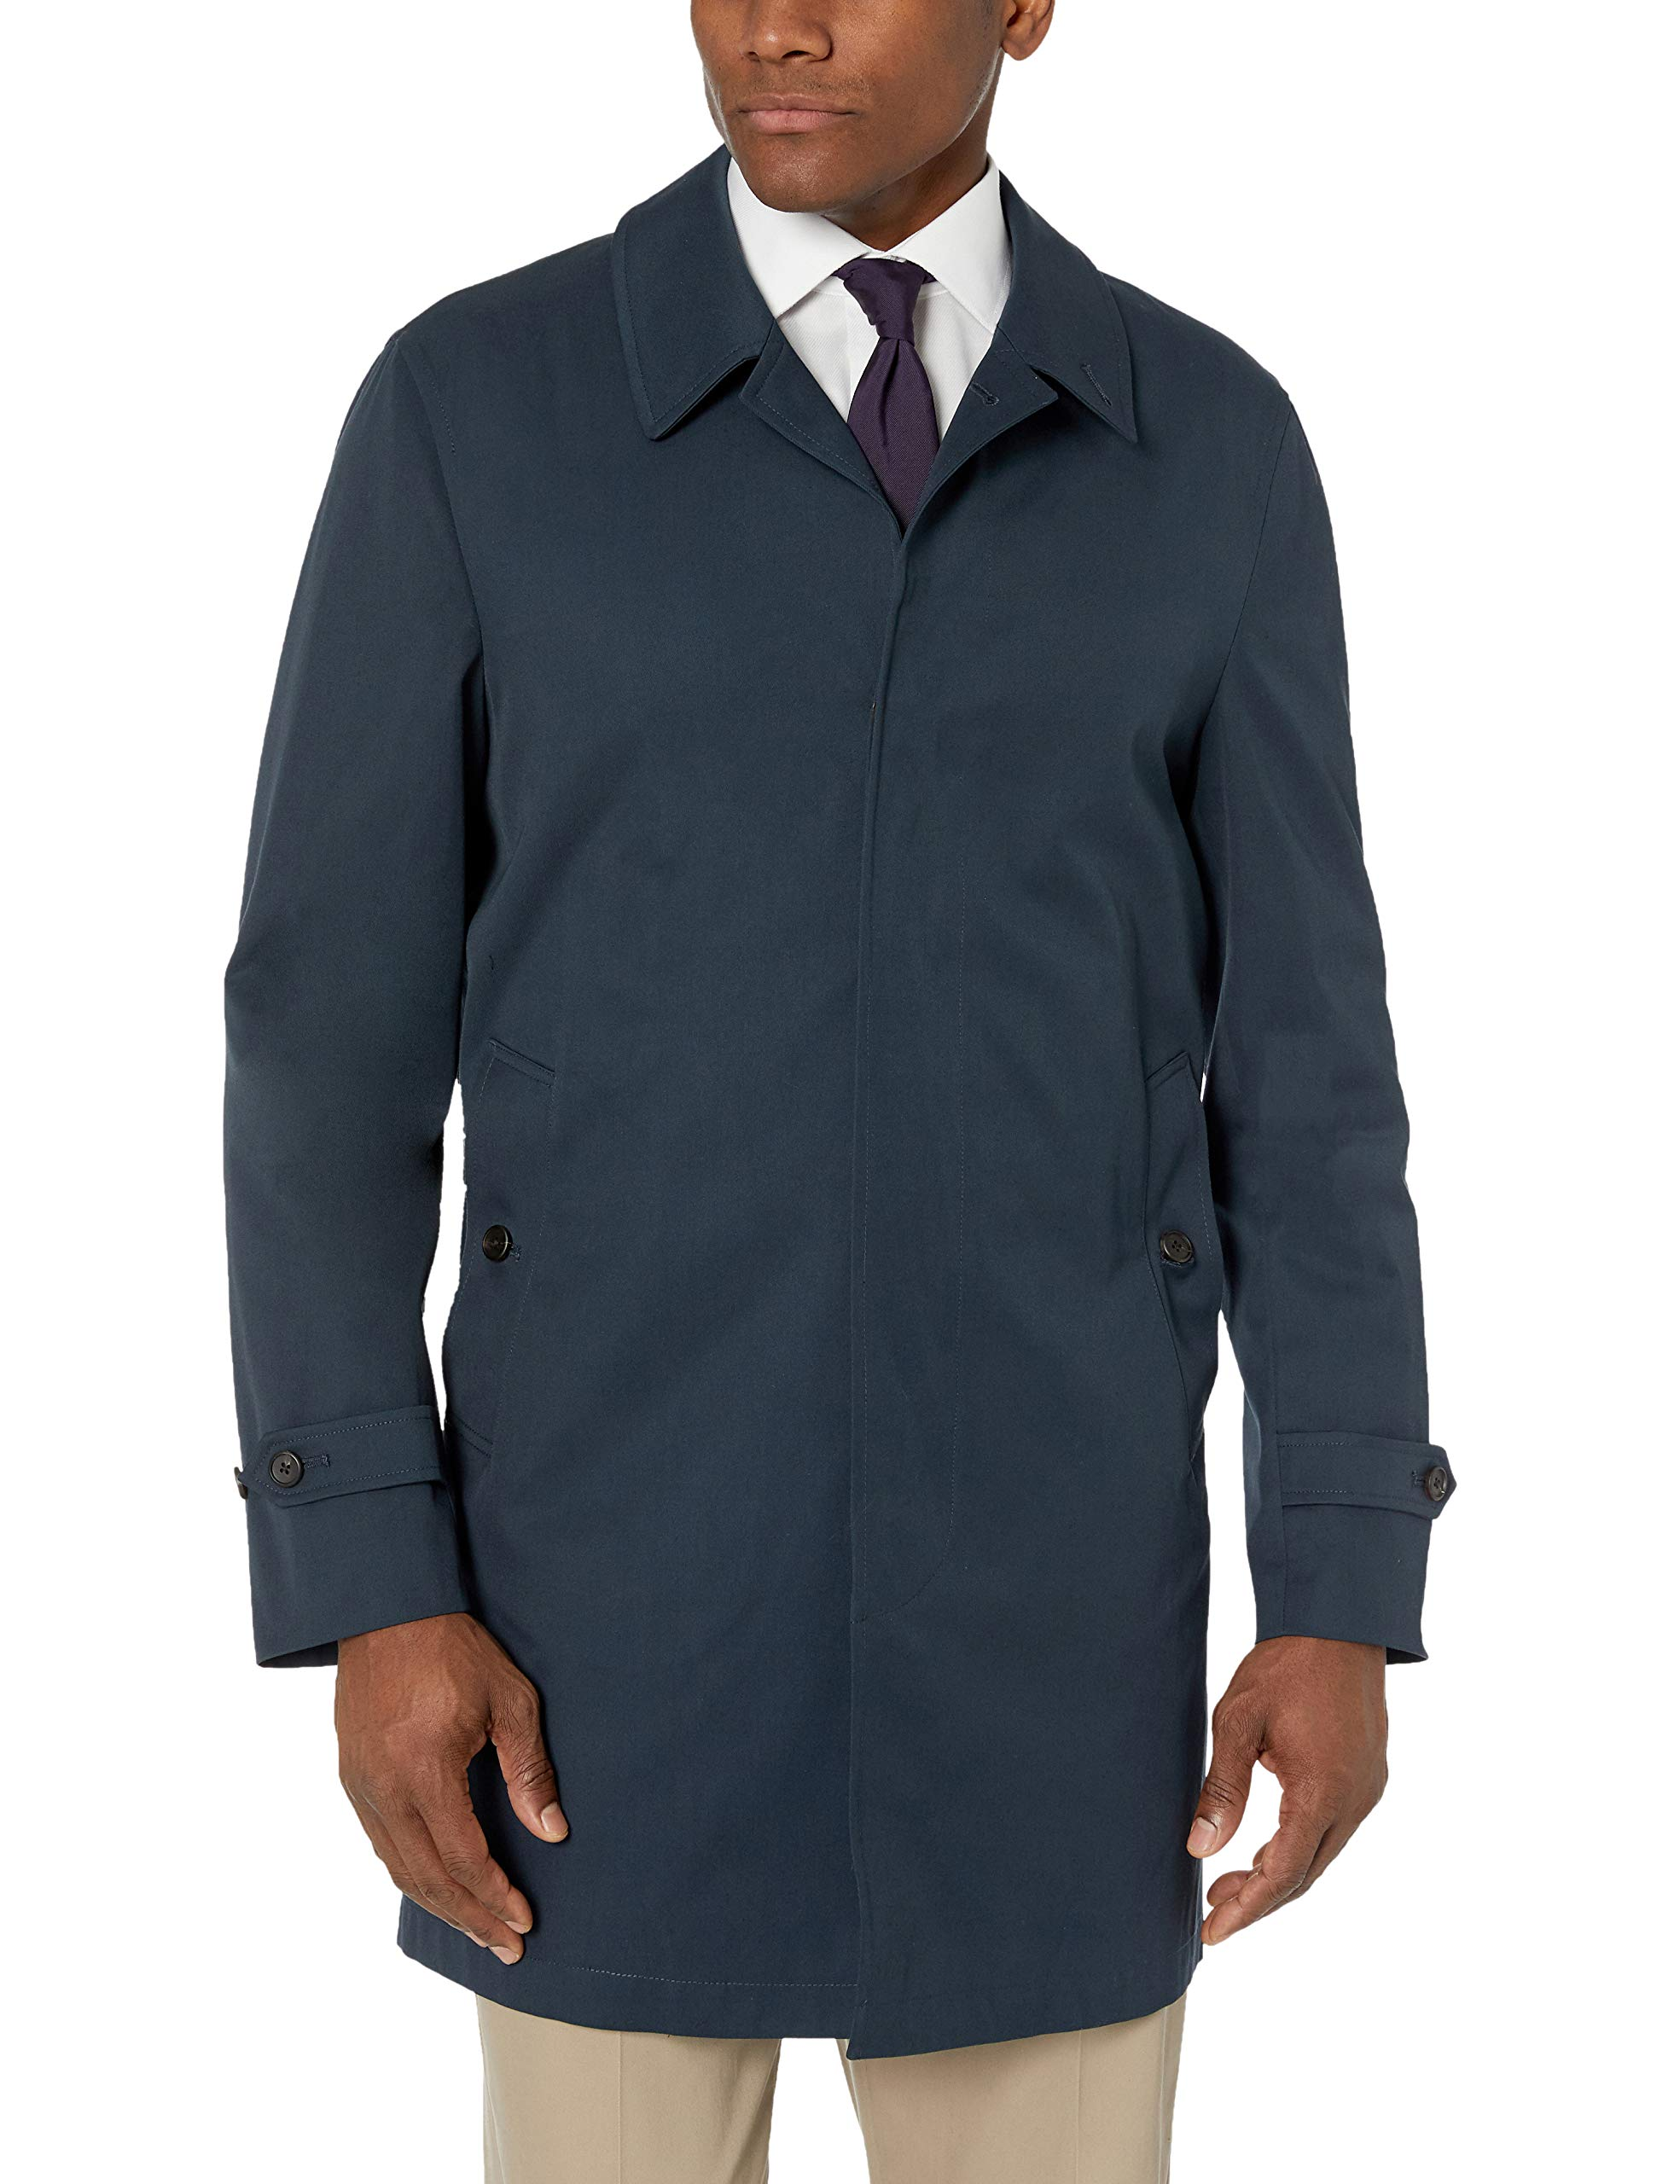 BUTTONED DOWN Men's Water-Repellant Cotton-Blend Car Coat, Navy, 40 Regular by Buttoned Down